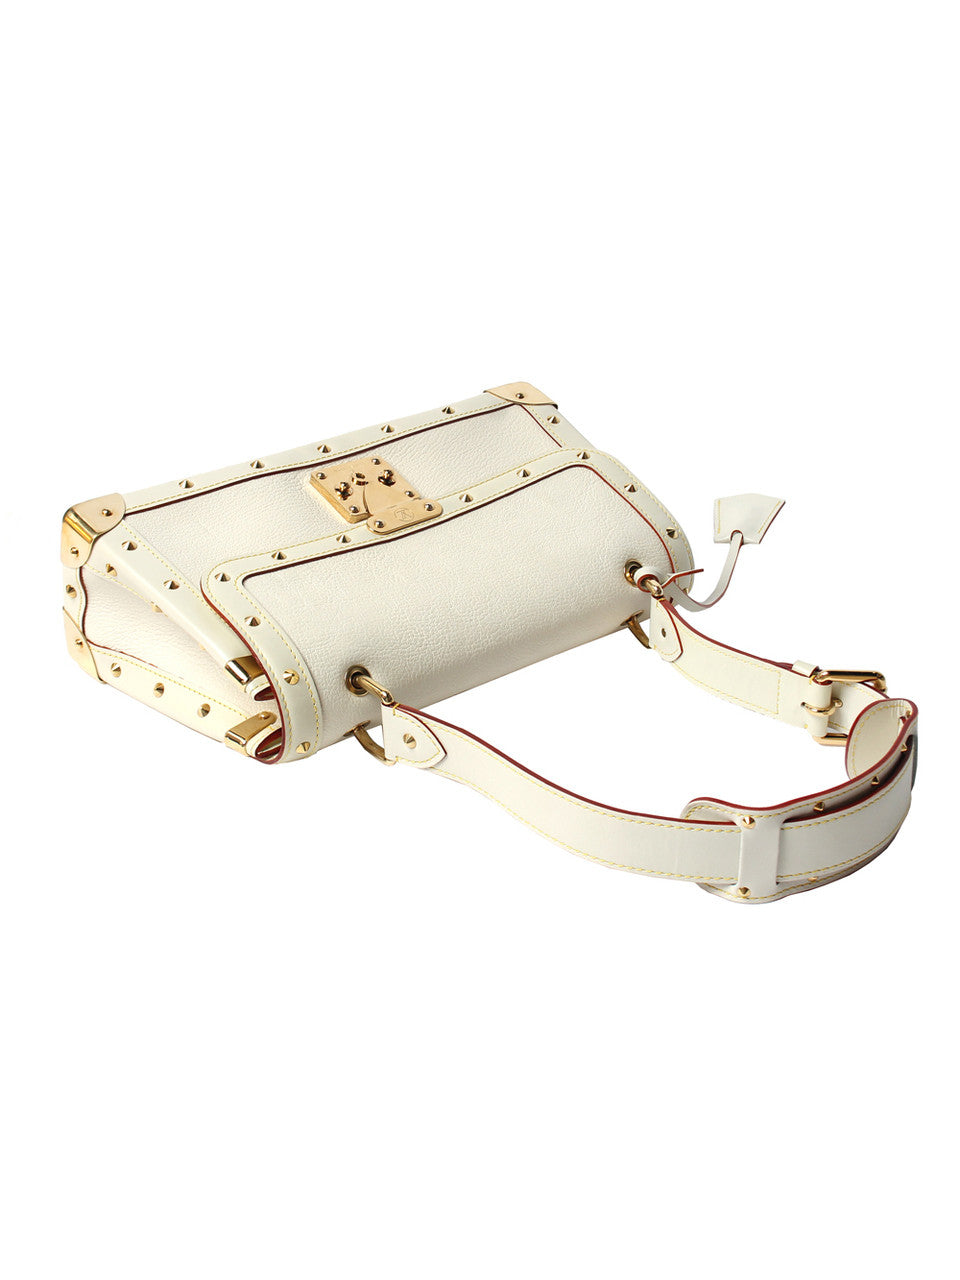 Louis Vuitton Cream Suhali Le Talentueux Studded Handbag